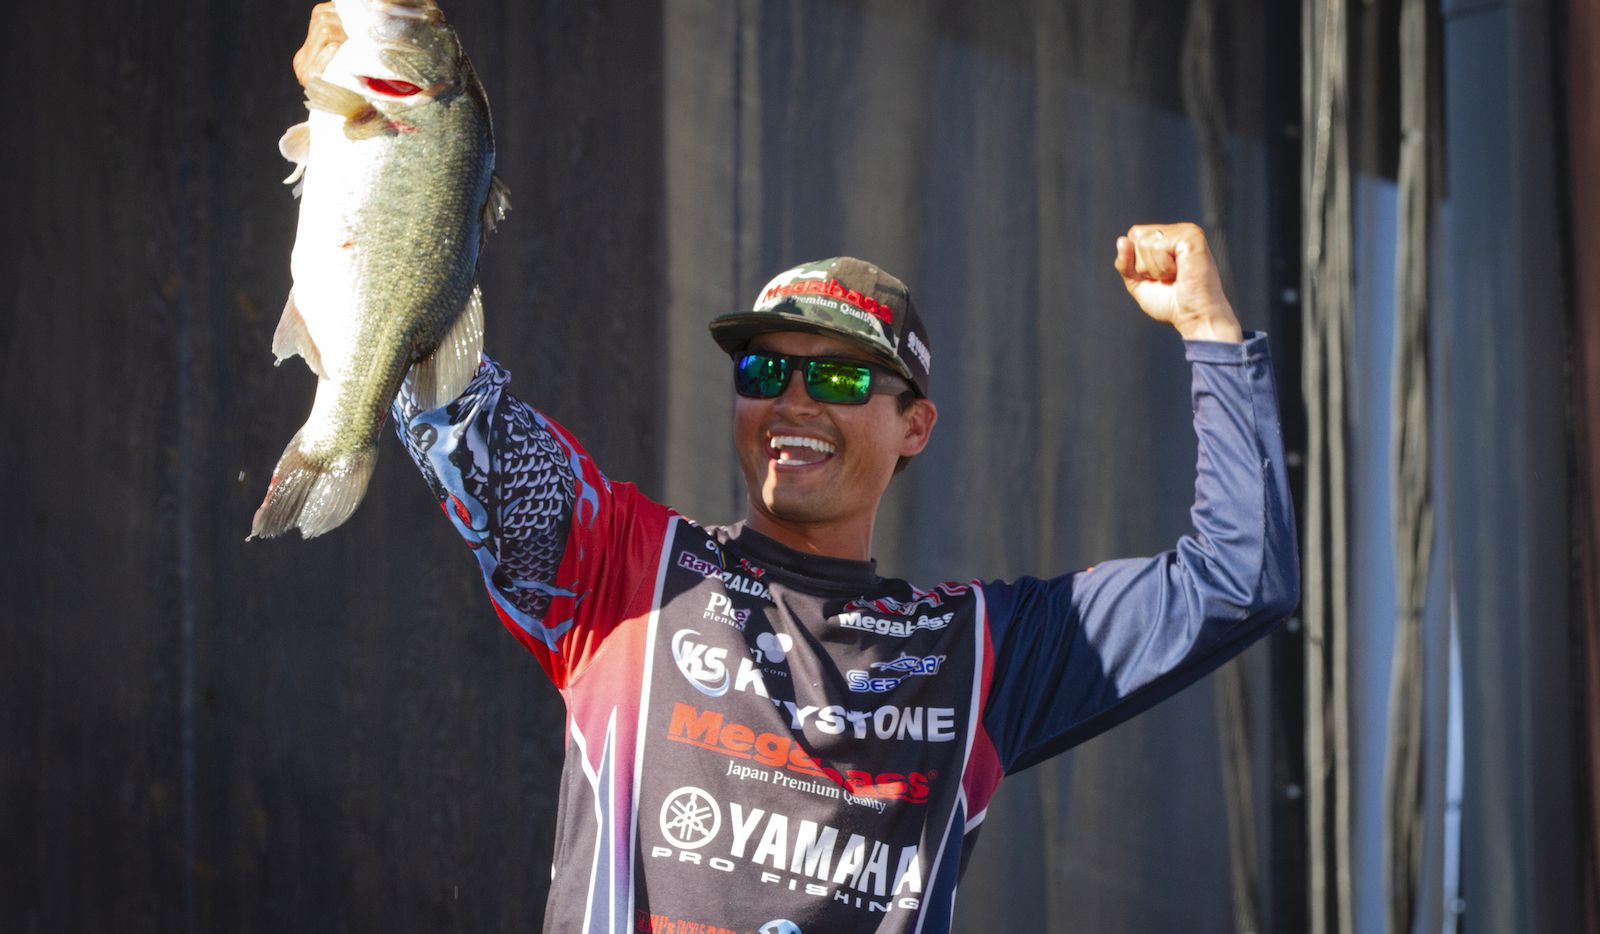 Fort Worth s Chris Zaldain is one of eight Texas Elite Series pros looking to nail down a spot in the 2021 Bassmaster Classic that will be held on Lake Ray Roberts in North Texas next March. The springtime event hosted by the Fort Worth Sports Commission and Visit Fort Worth will be the third Classic held on Texas waters since 1979.